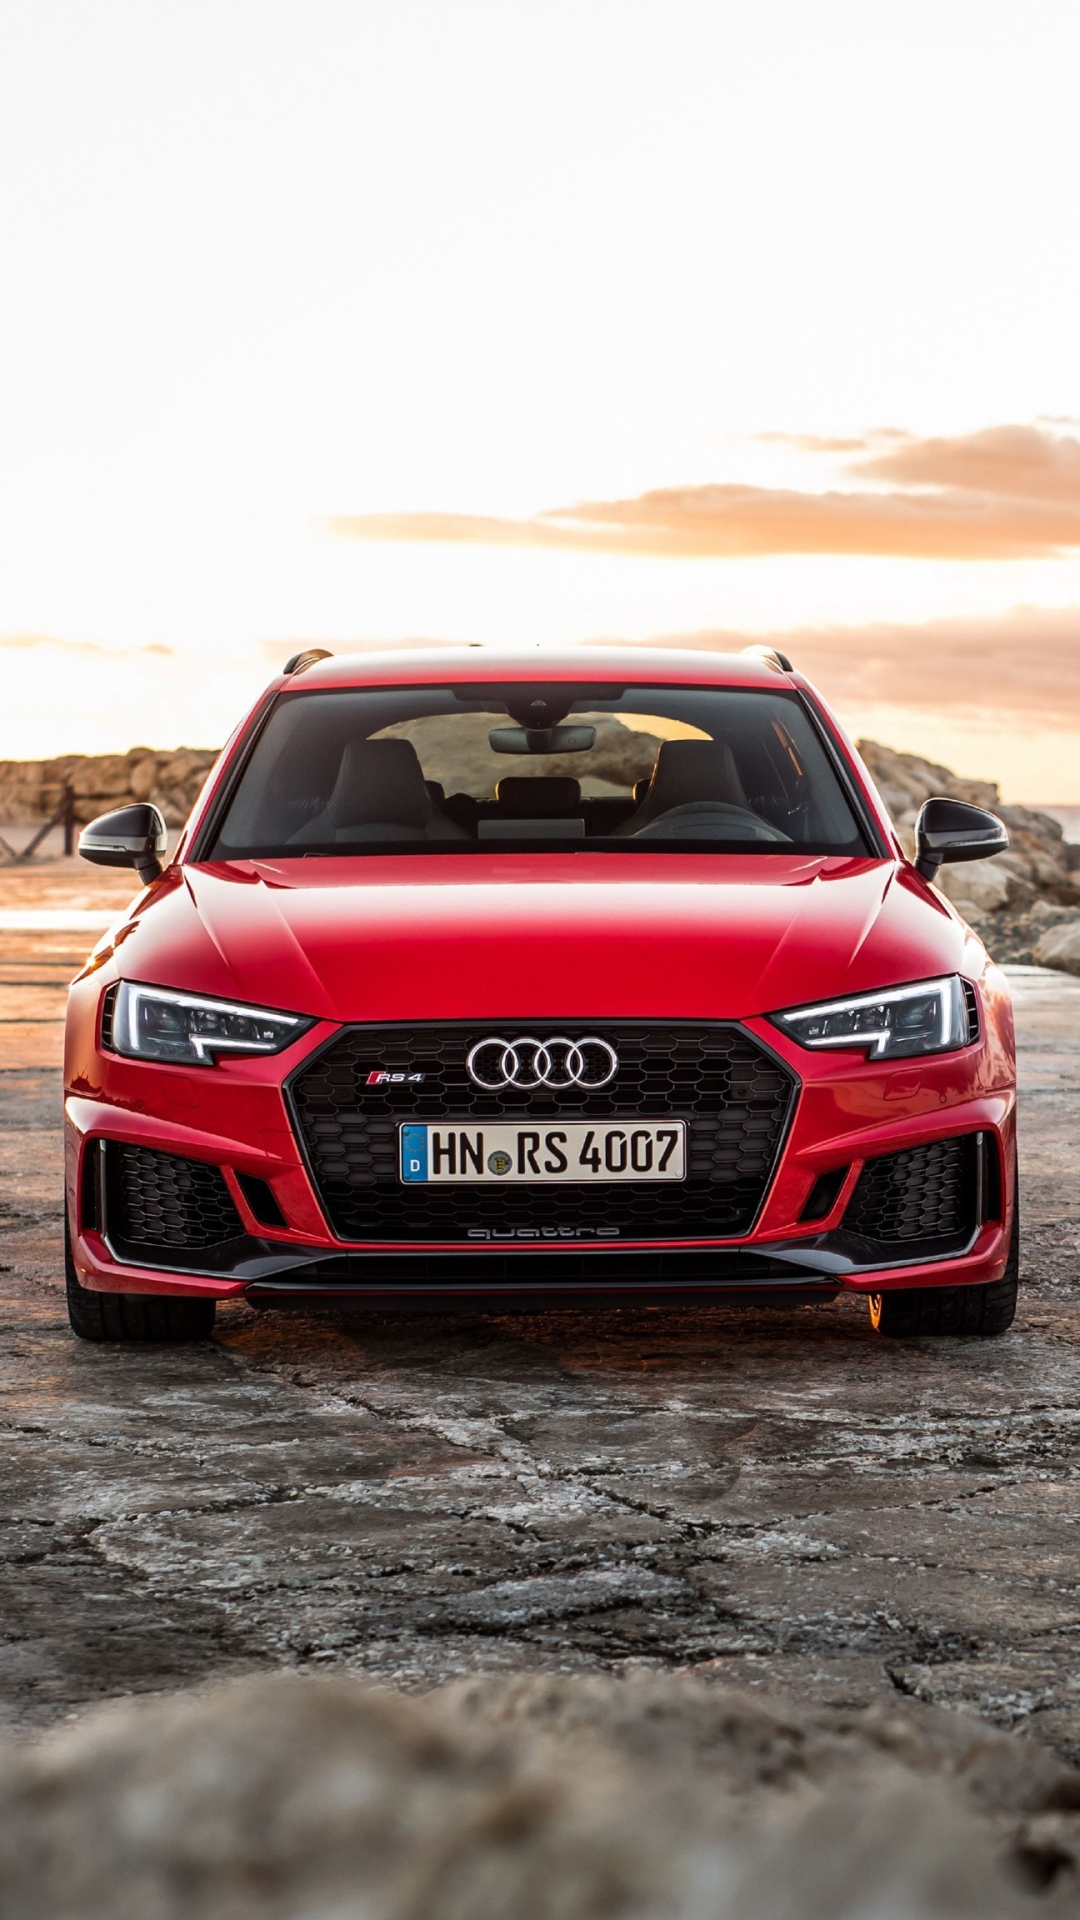 vehicles/audi rs4 (720x1280) wallpaper id: 713090 - mobile abyss